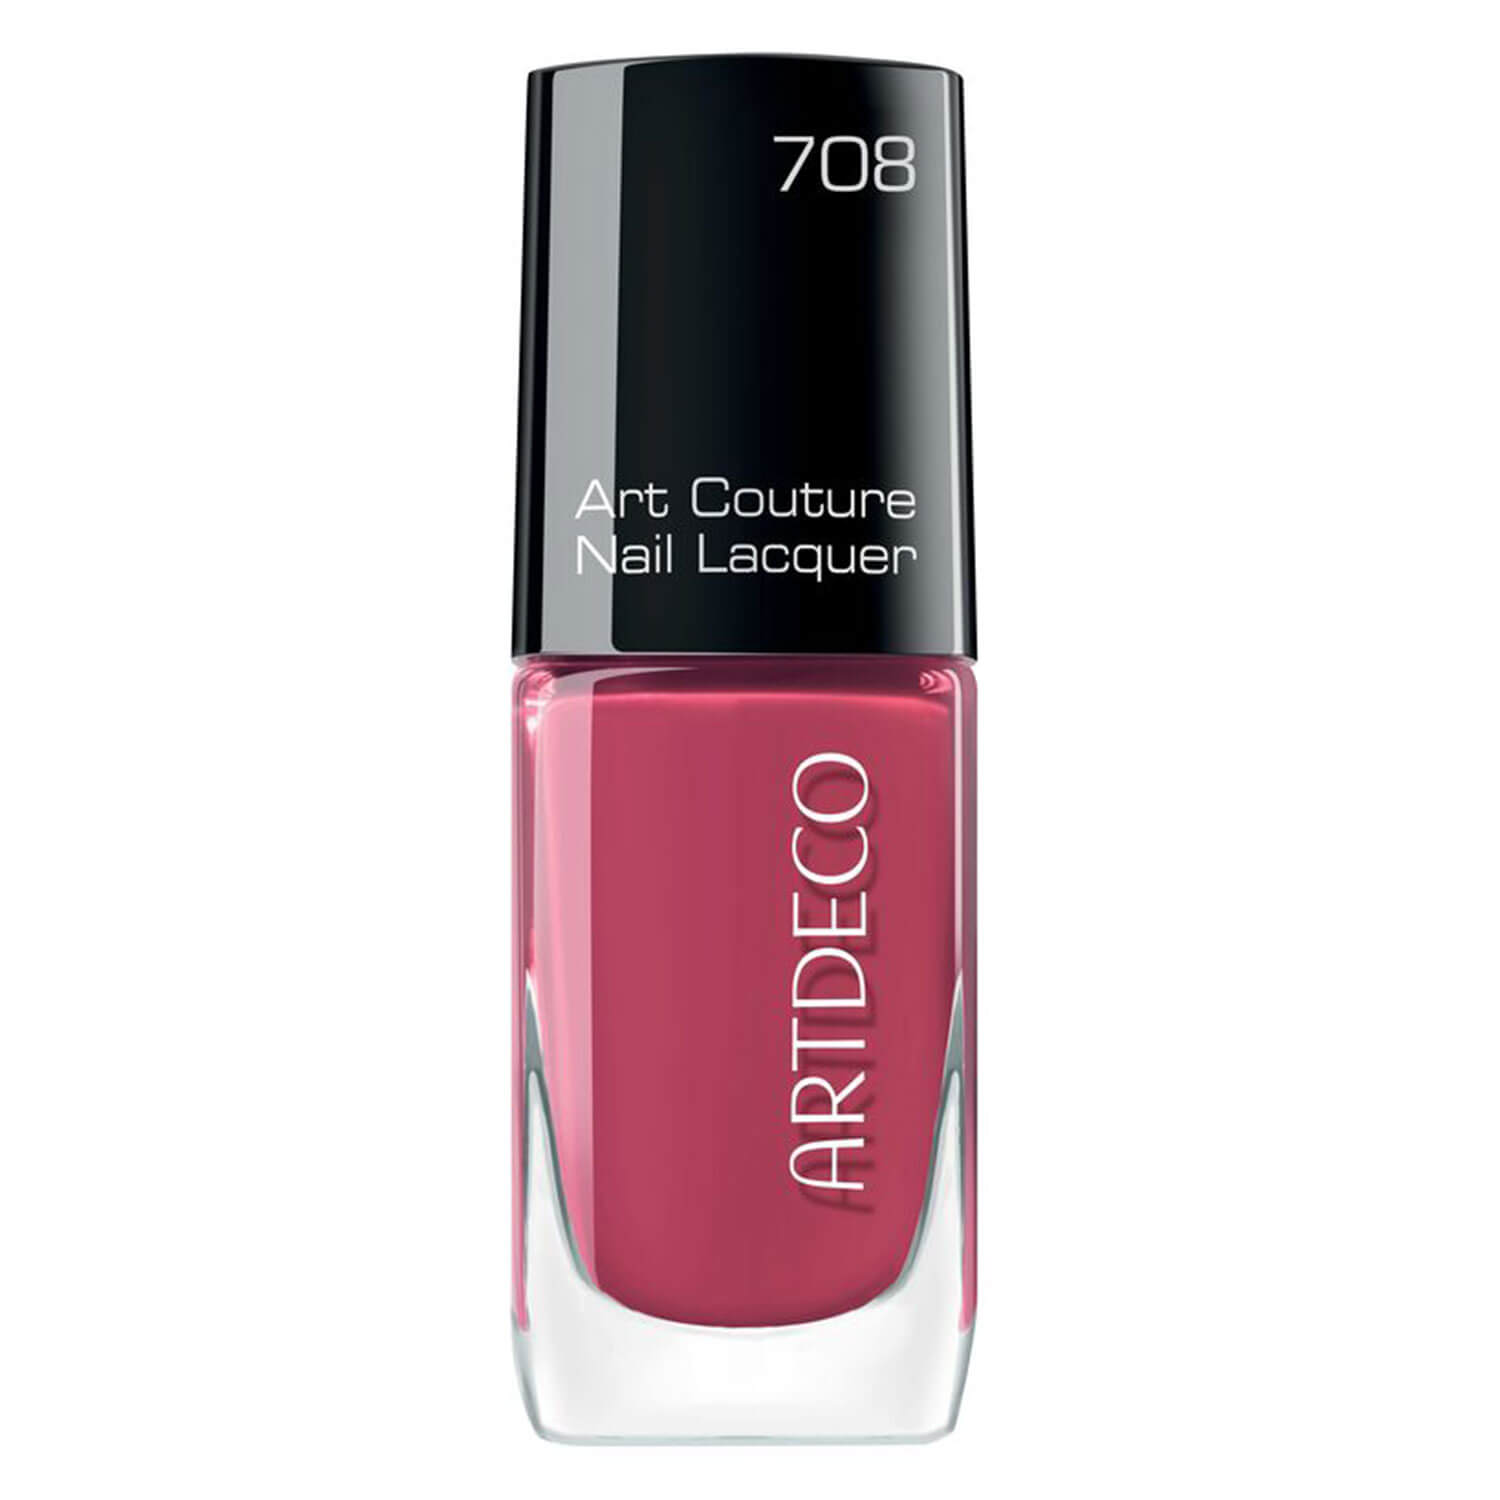 Art Couture - Nail Lacquer Blooming Day 708